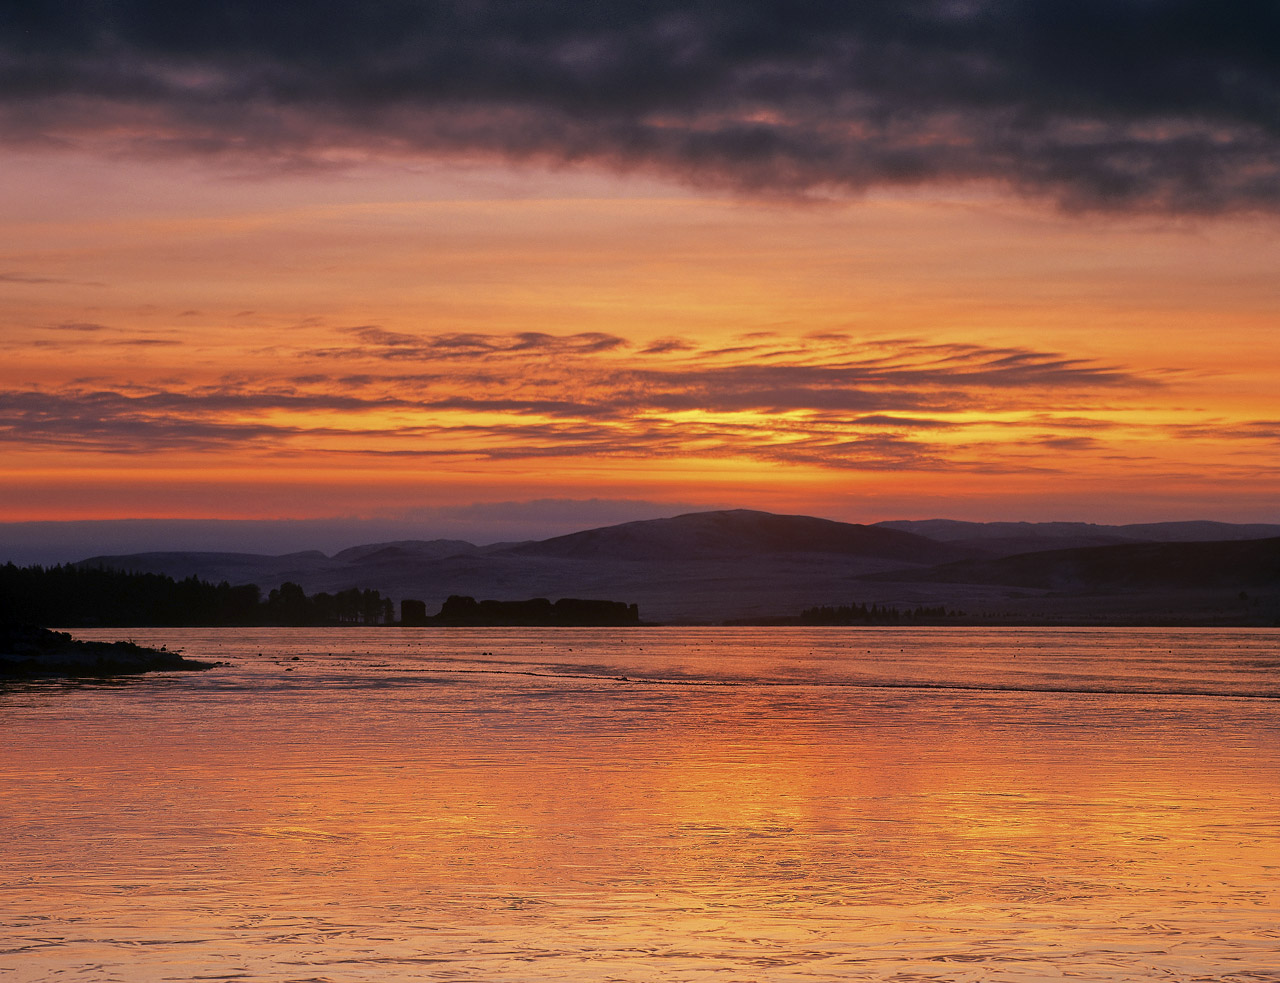 a glorious winter sunset over desolate and frozenLochindorb the colours reflecting spectacularly in the ice. careful...